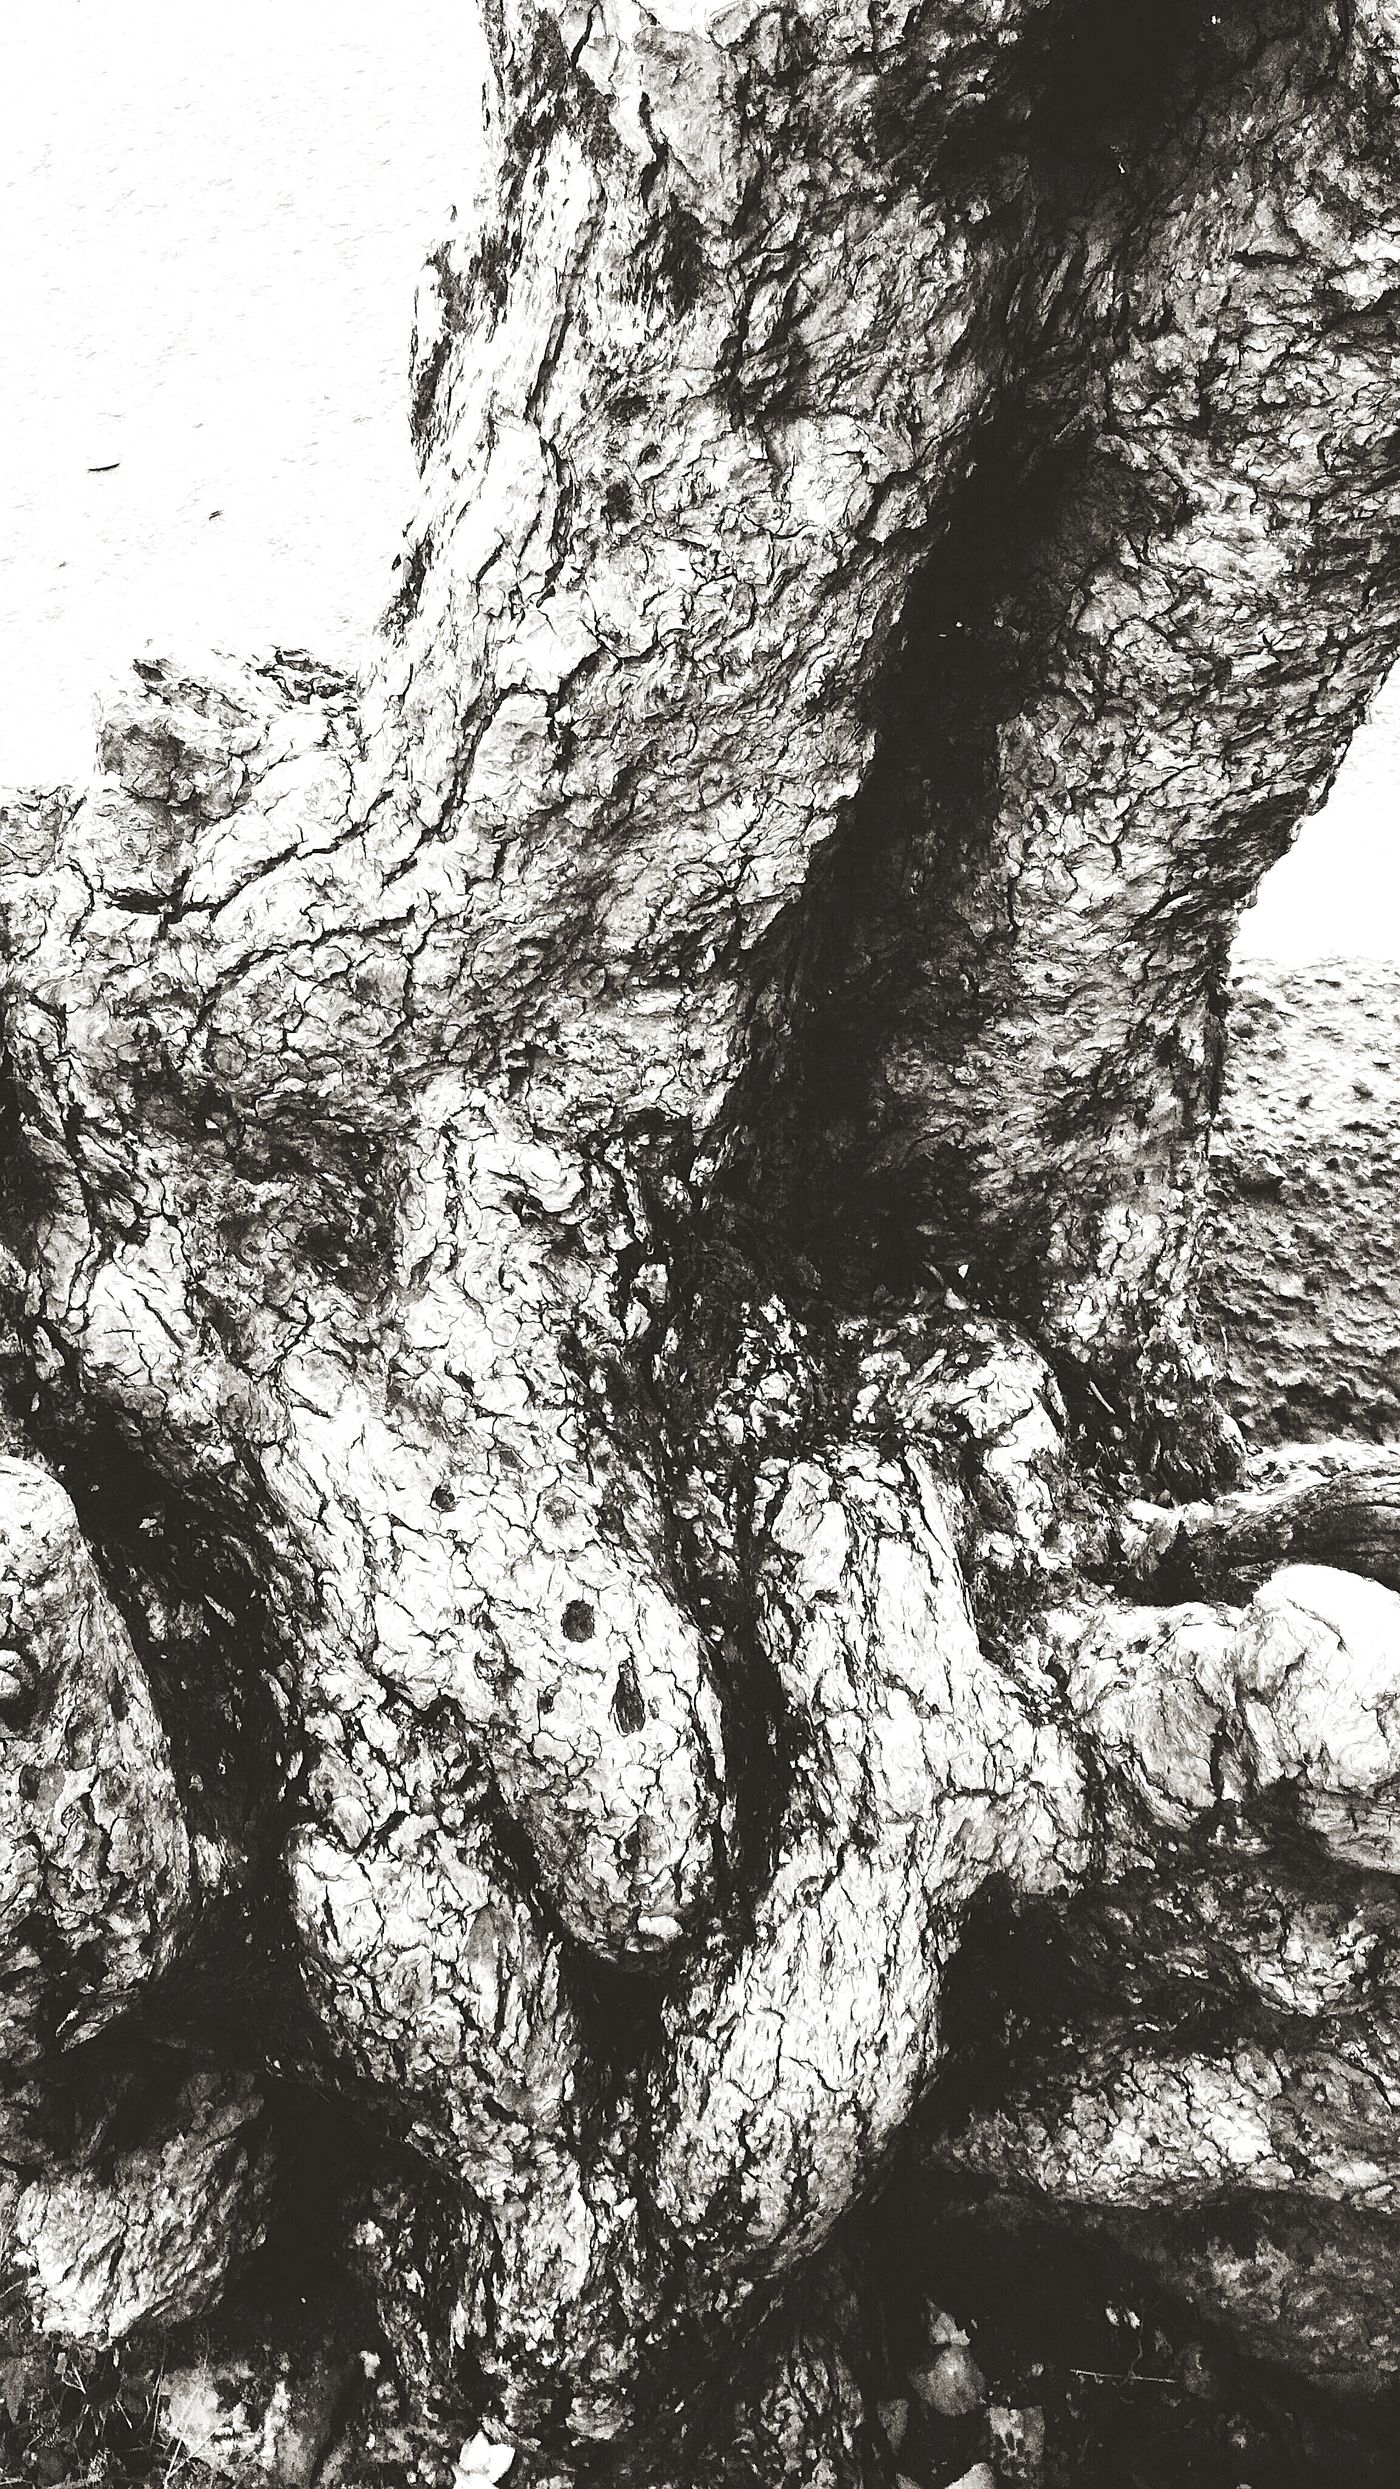 You can learn about strength and persistence through things around you. Well, at least, this is what I believe. My example will be as simple as this picture. A tree. An old one. Its roots. Tree Trunk Bark Nature Beauty In Nature Close-up Monochrome Outdoors Single Tree Tree Plant Naturephotography Naturelovers Whatiseewheniwalk Black And White Photography Black&white Bw-collection Bwoftheday